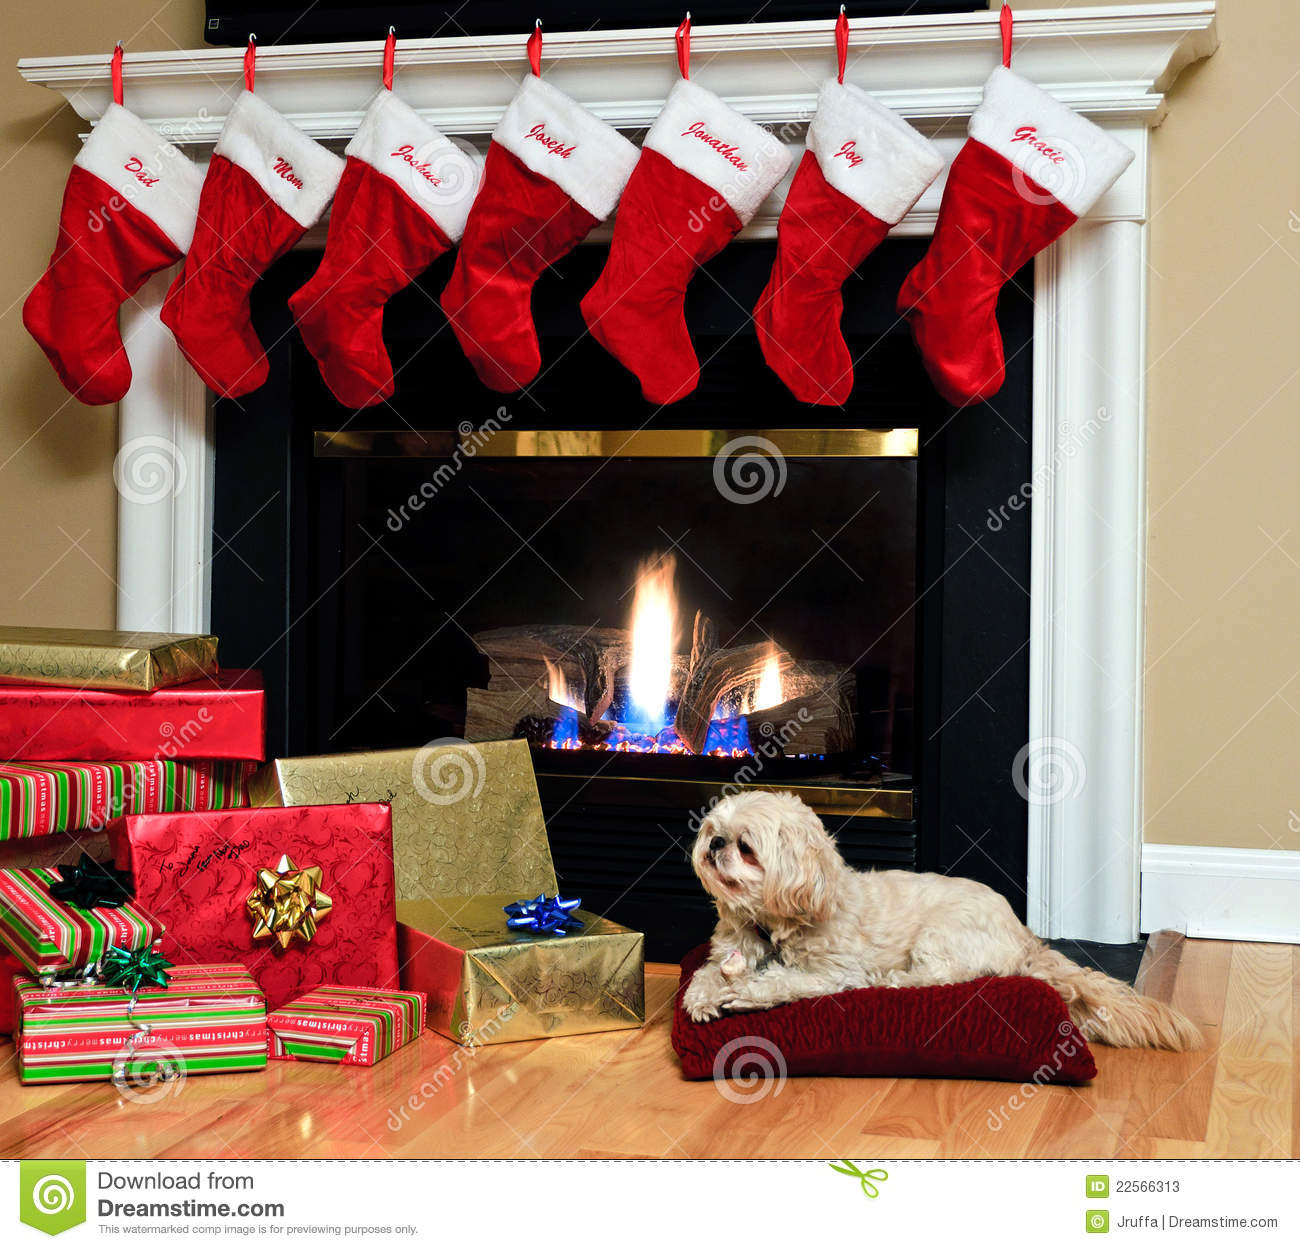 Red Christmas Stockings Hang From The Mantle Over A Blazing Fireplace